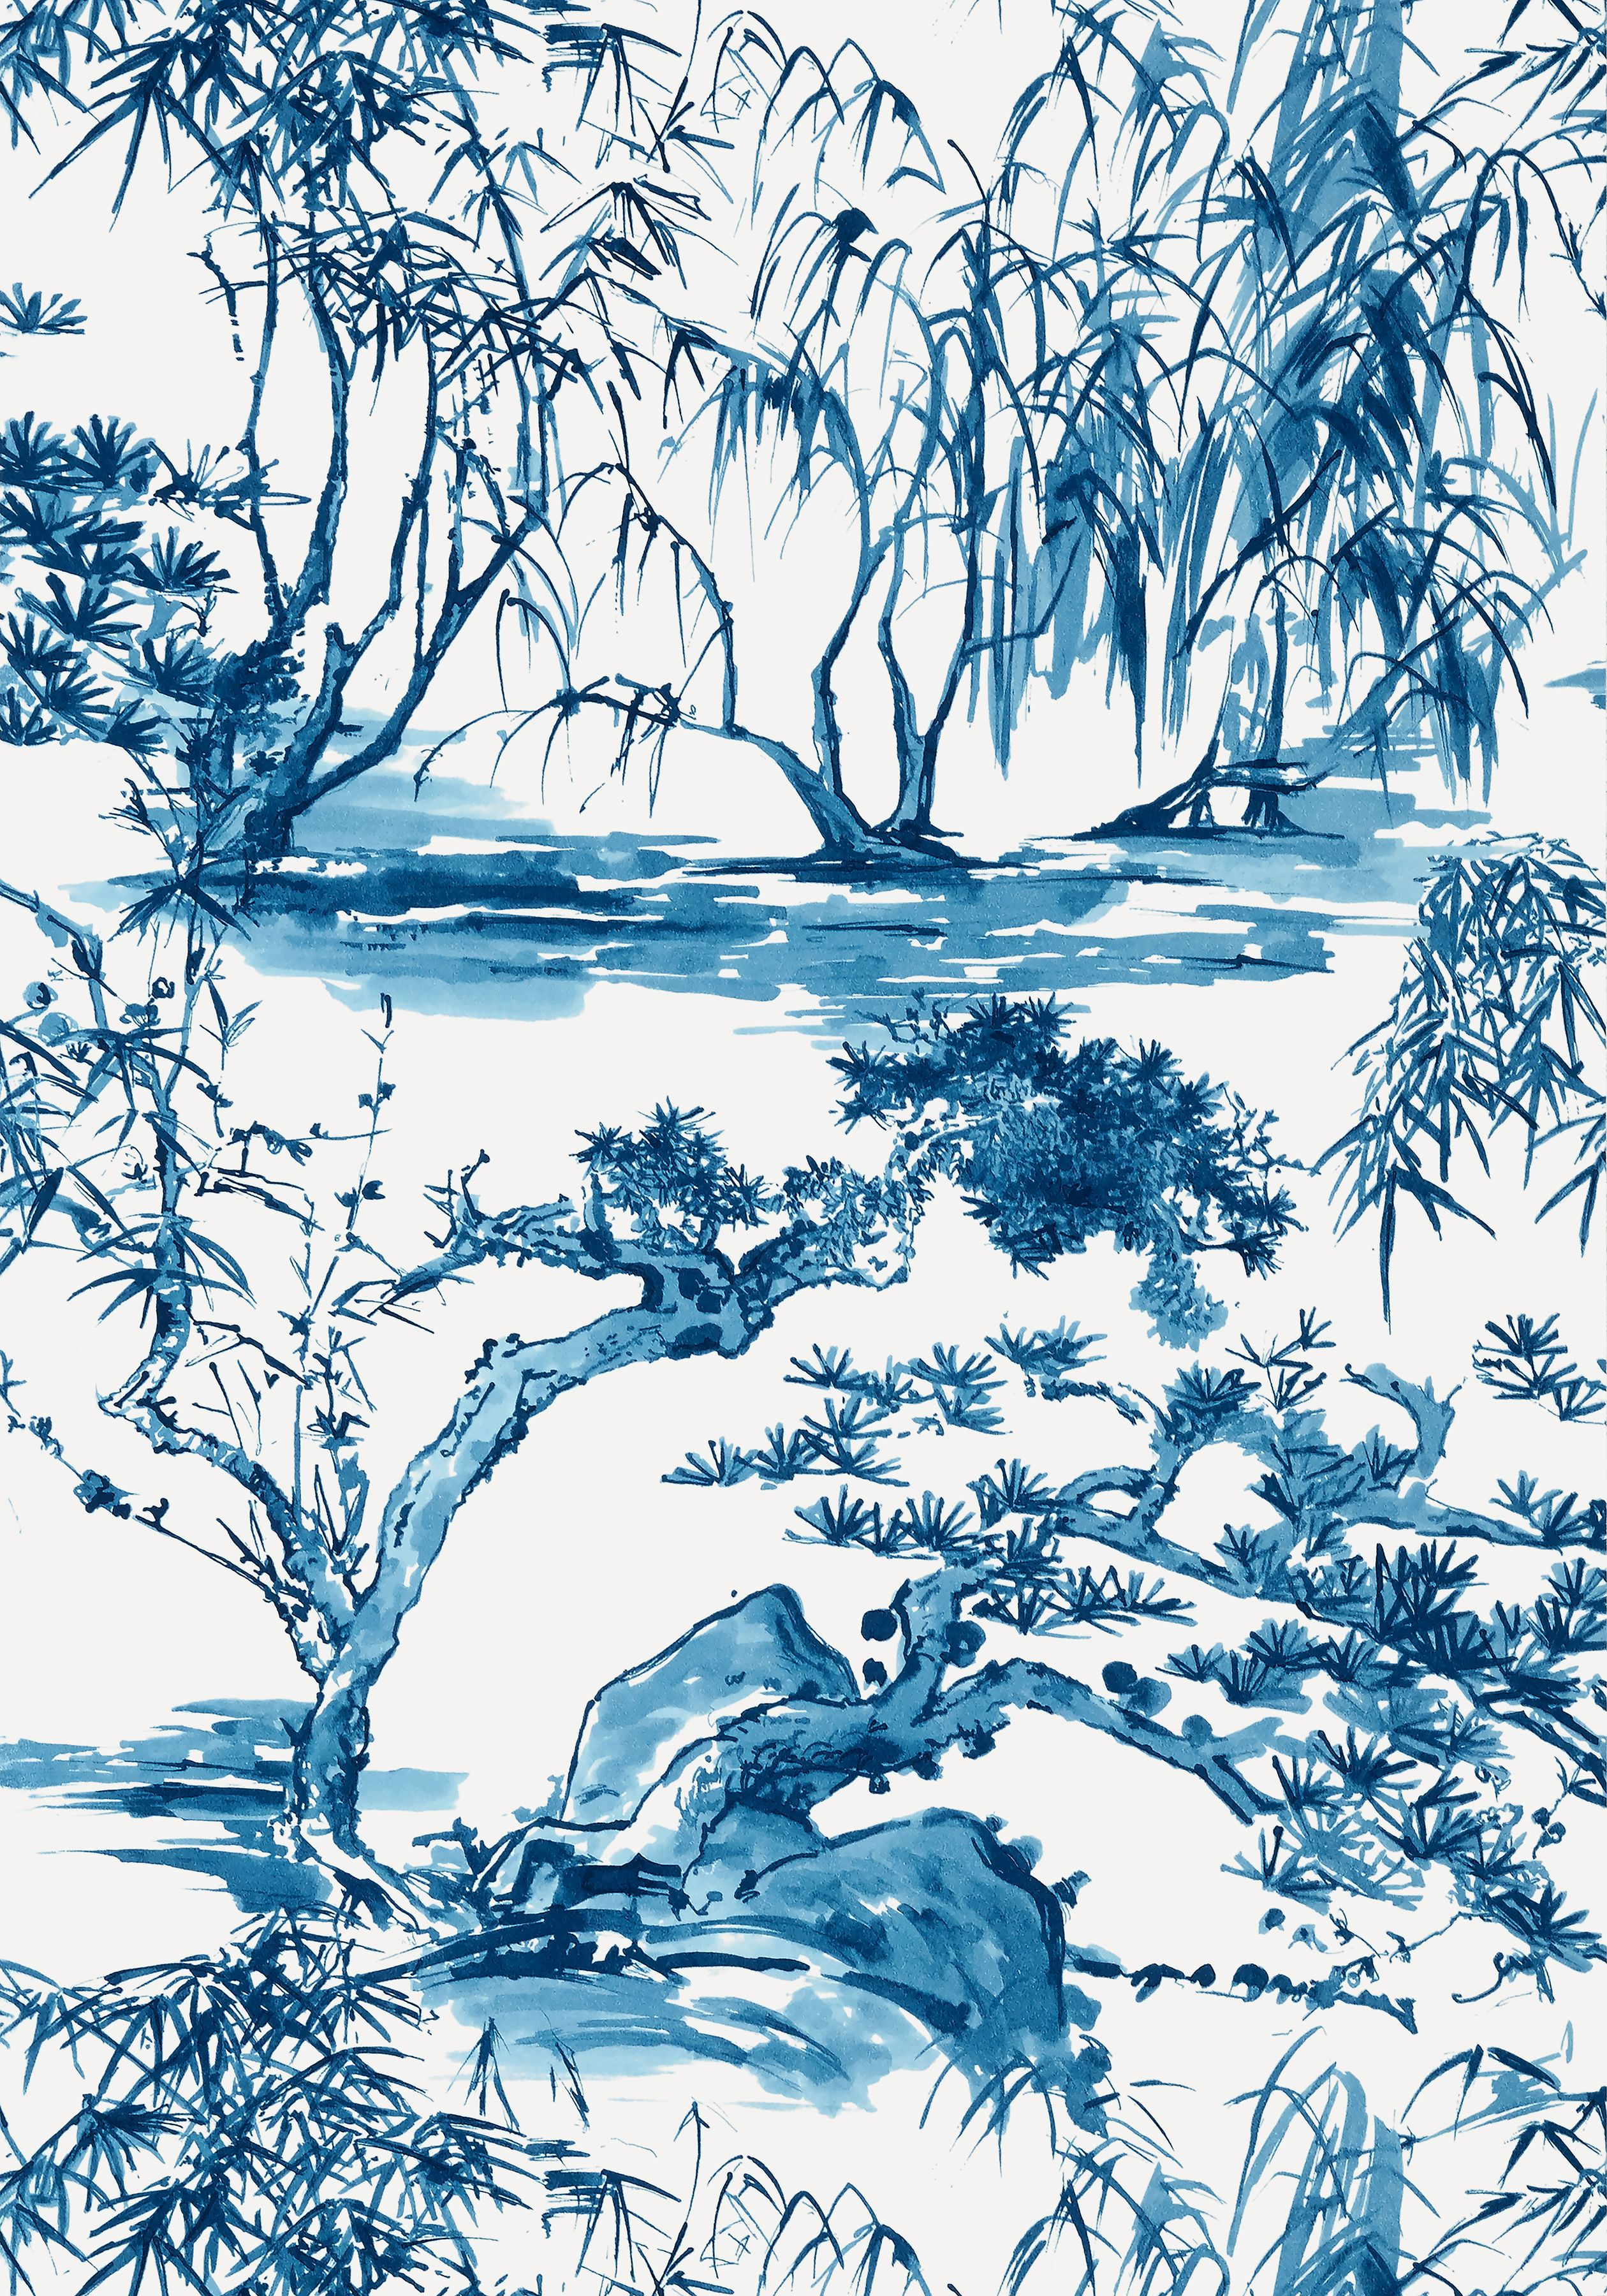 KYOTO, Navy, AT9826, Collection Nara from Anna French in